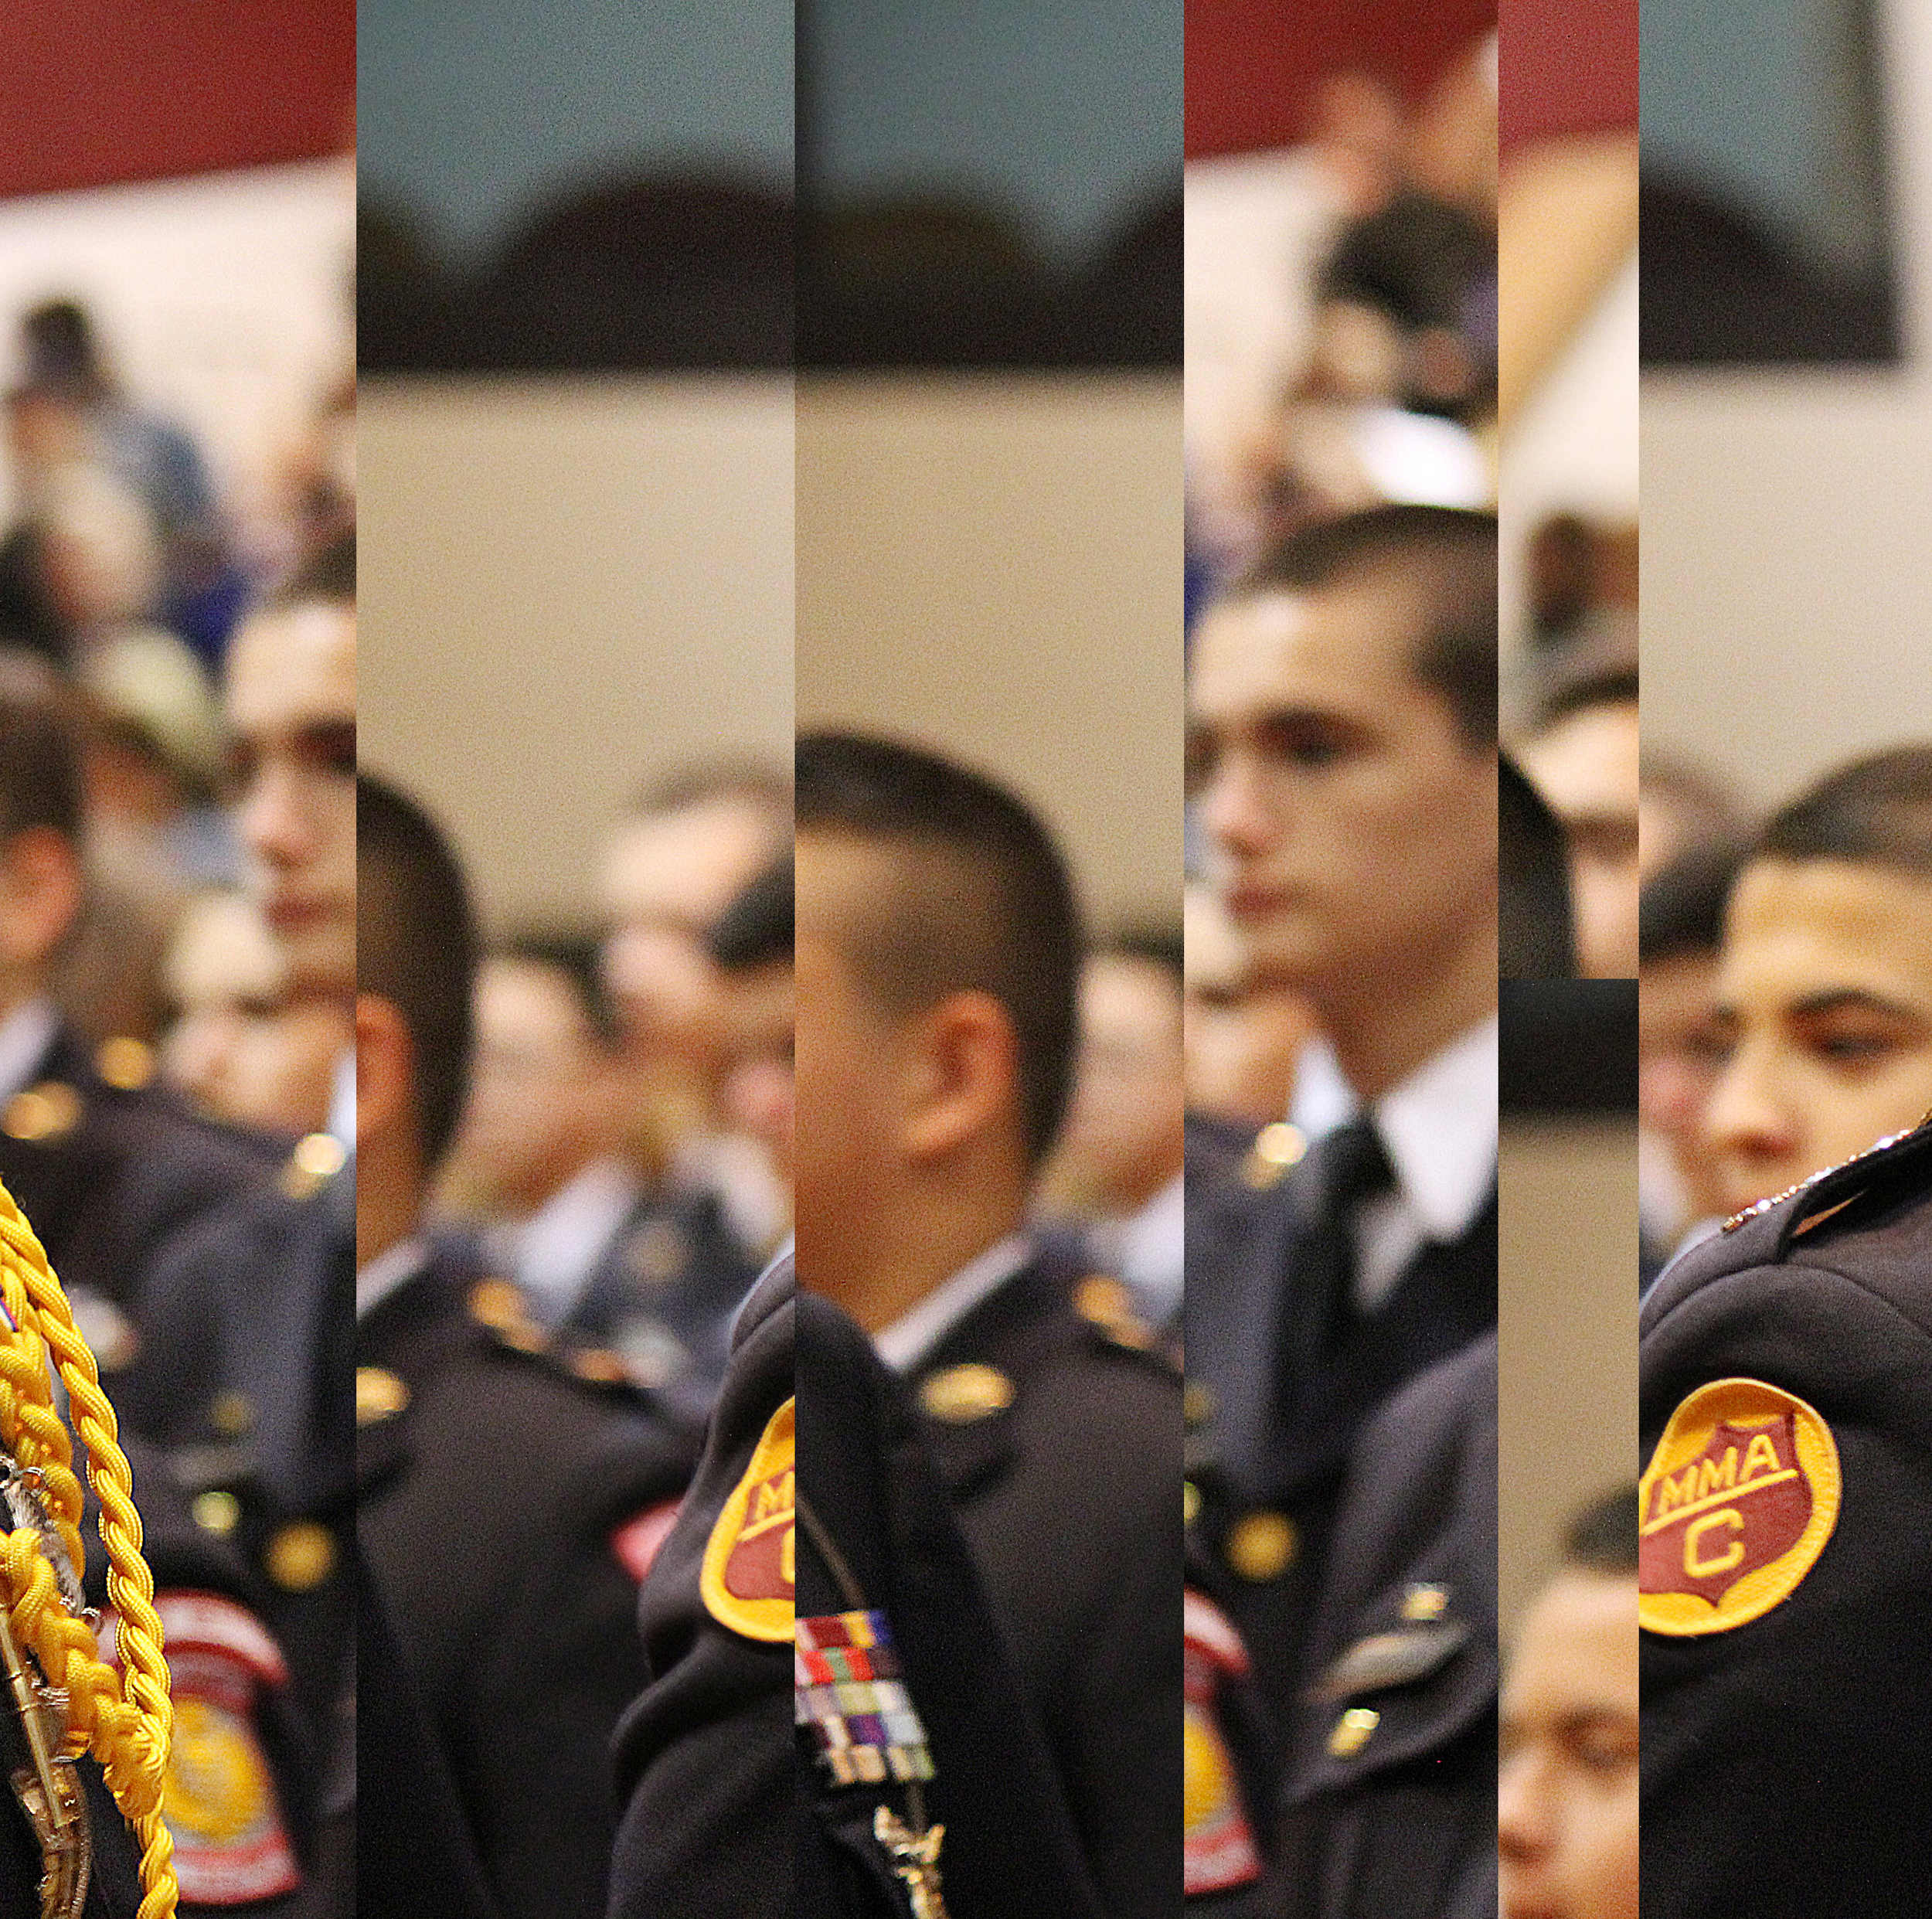 *To respect the privacy of the cadet, I chopped this photo up to only highlight the audience behind. him